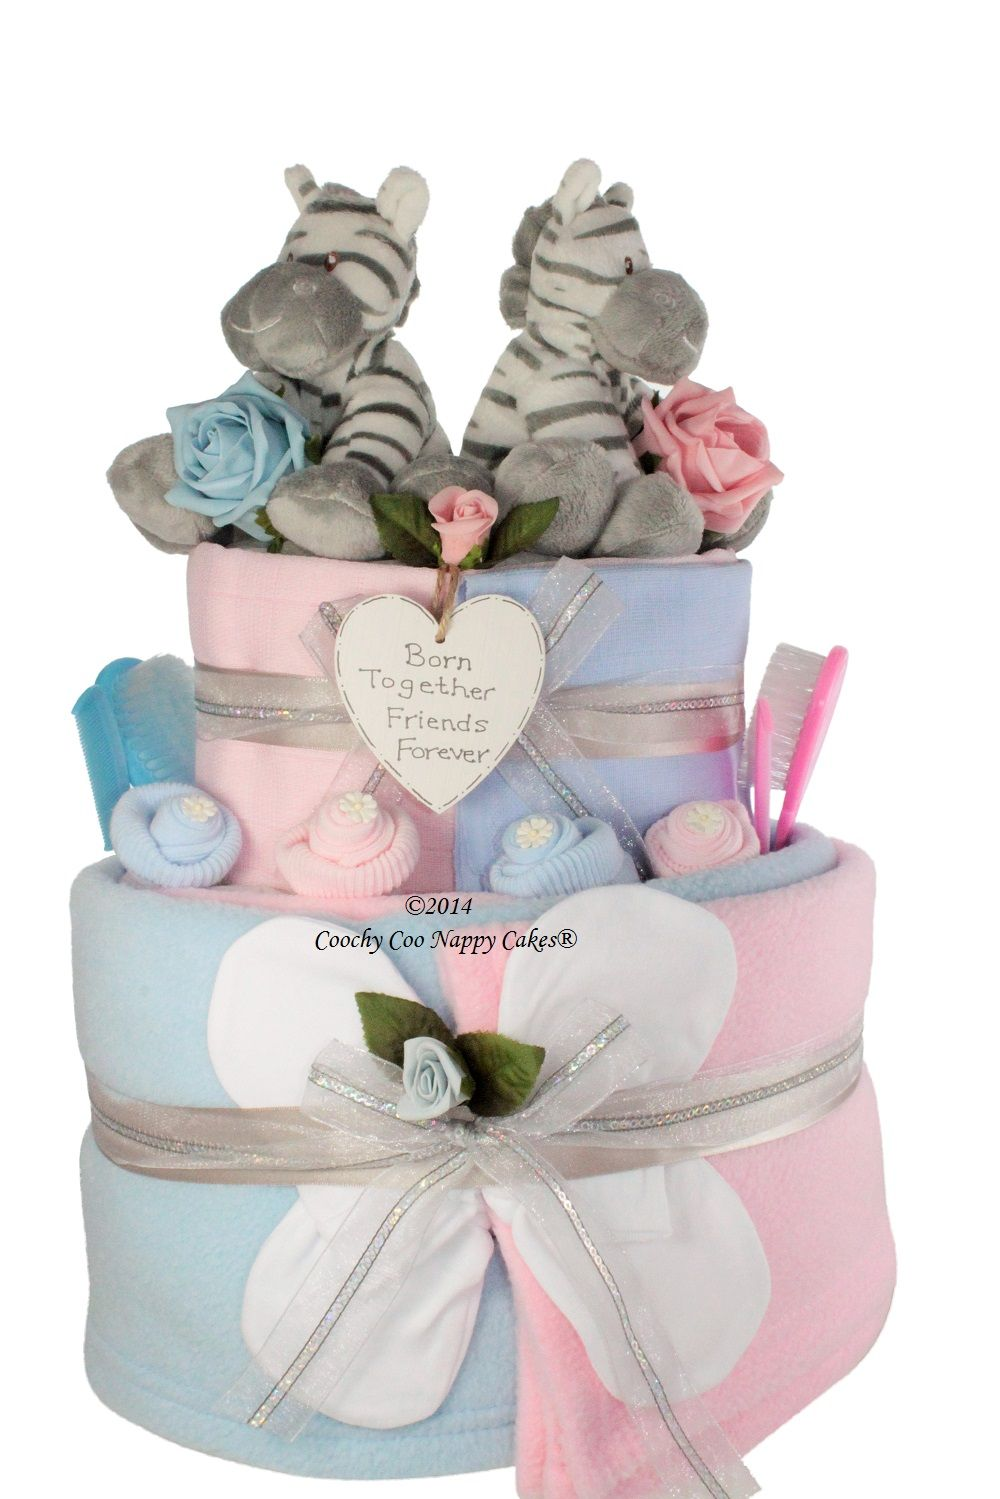 newborn baby gift for twin baby girl and boy nappy cake www